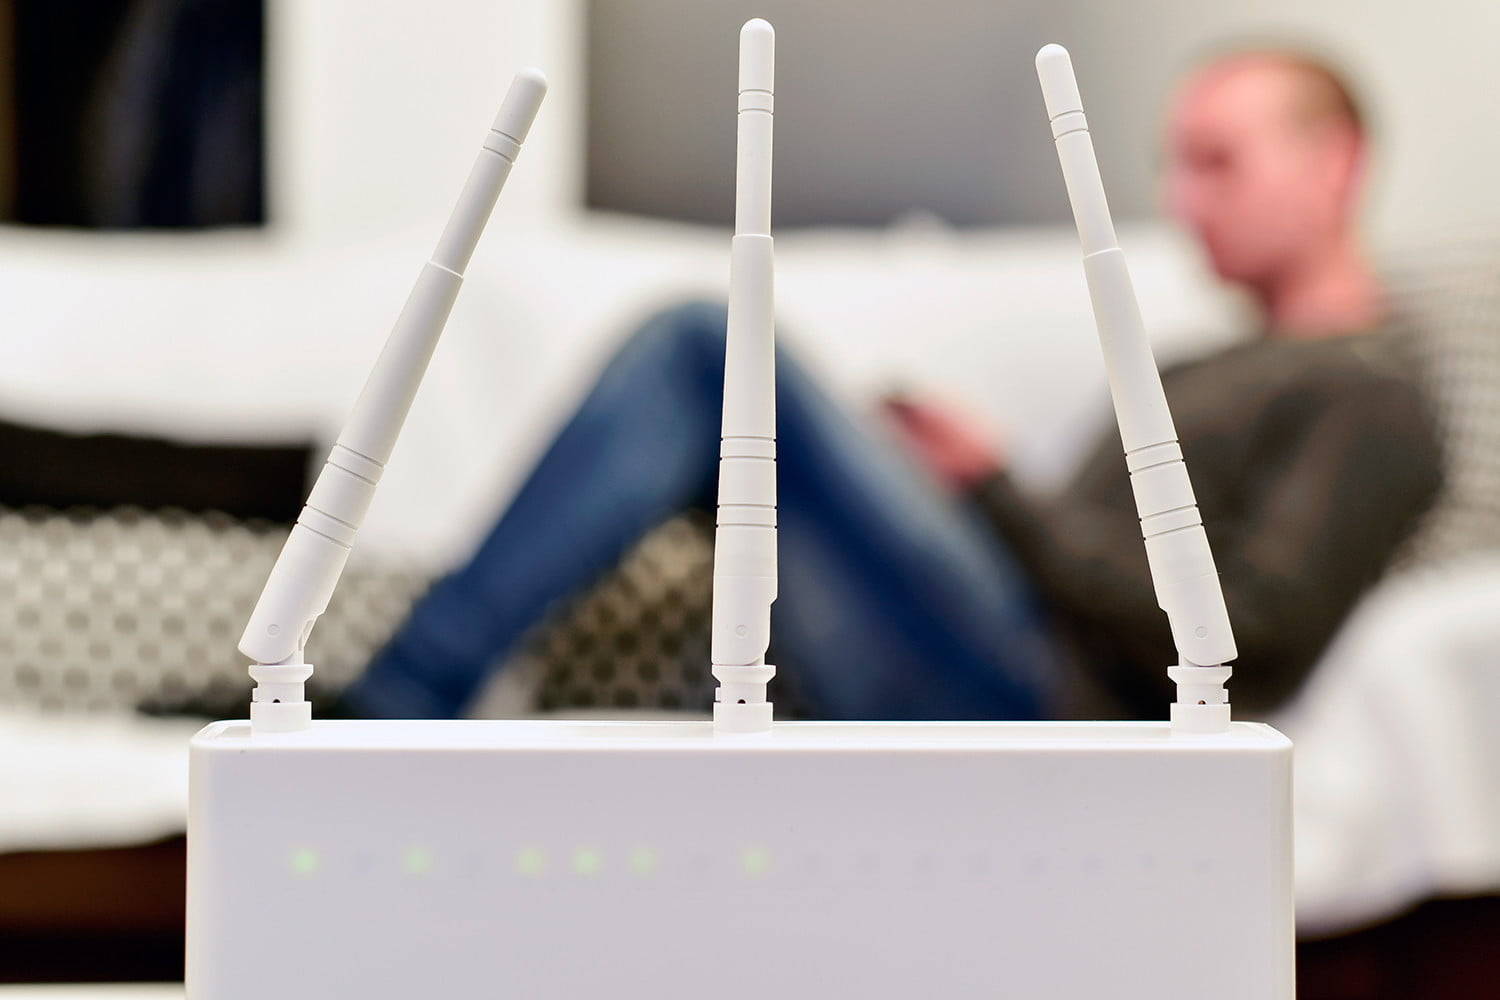 medium resolution of how to extend wi fi range with another router turn a into wireless repeater